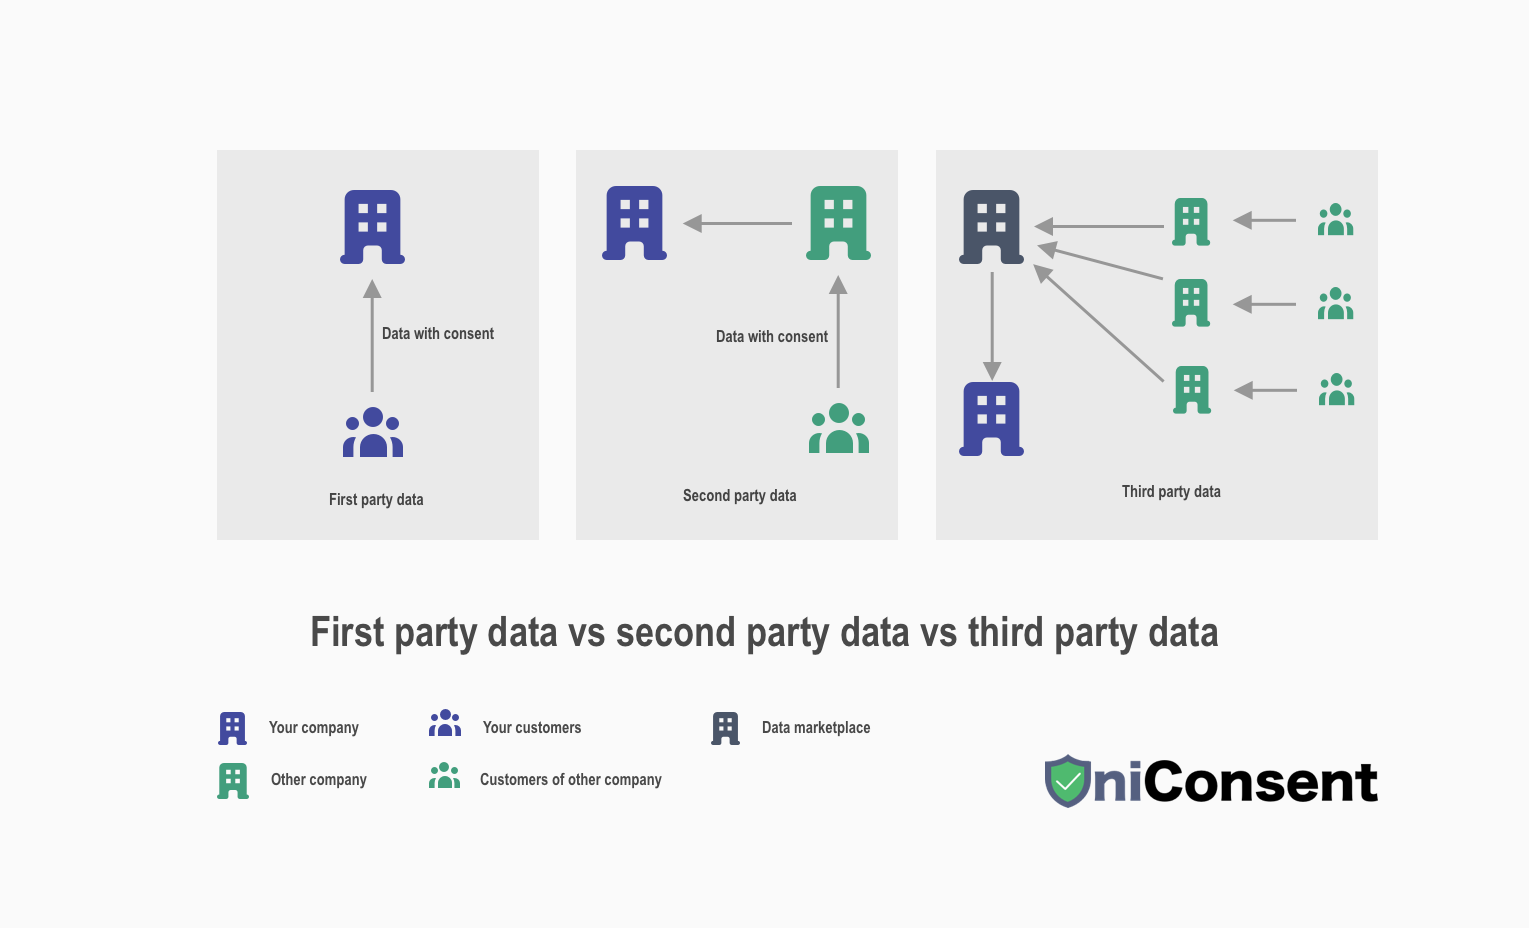 first party data vs second party data vs third party data